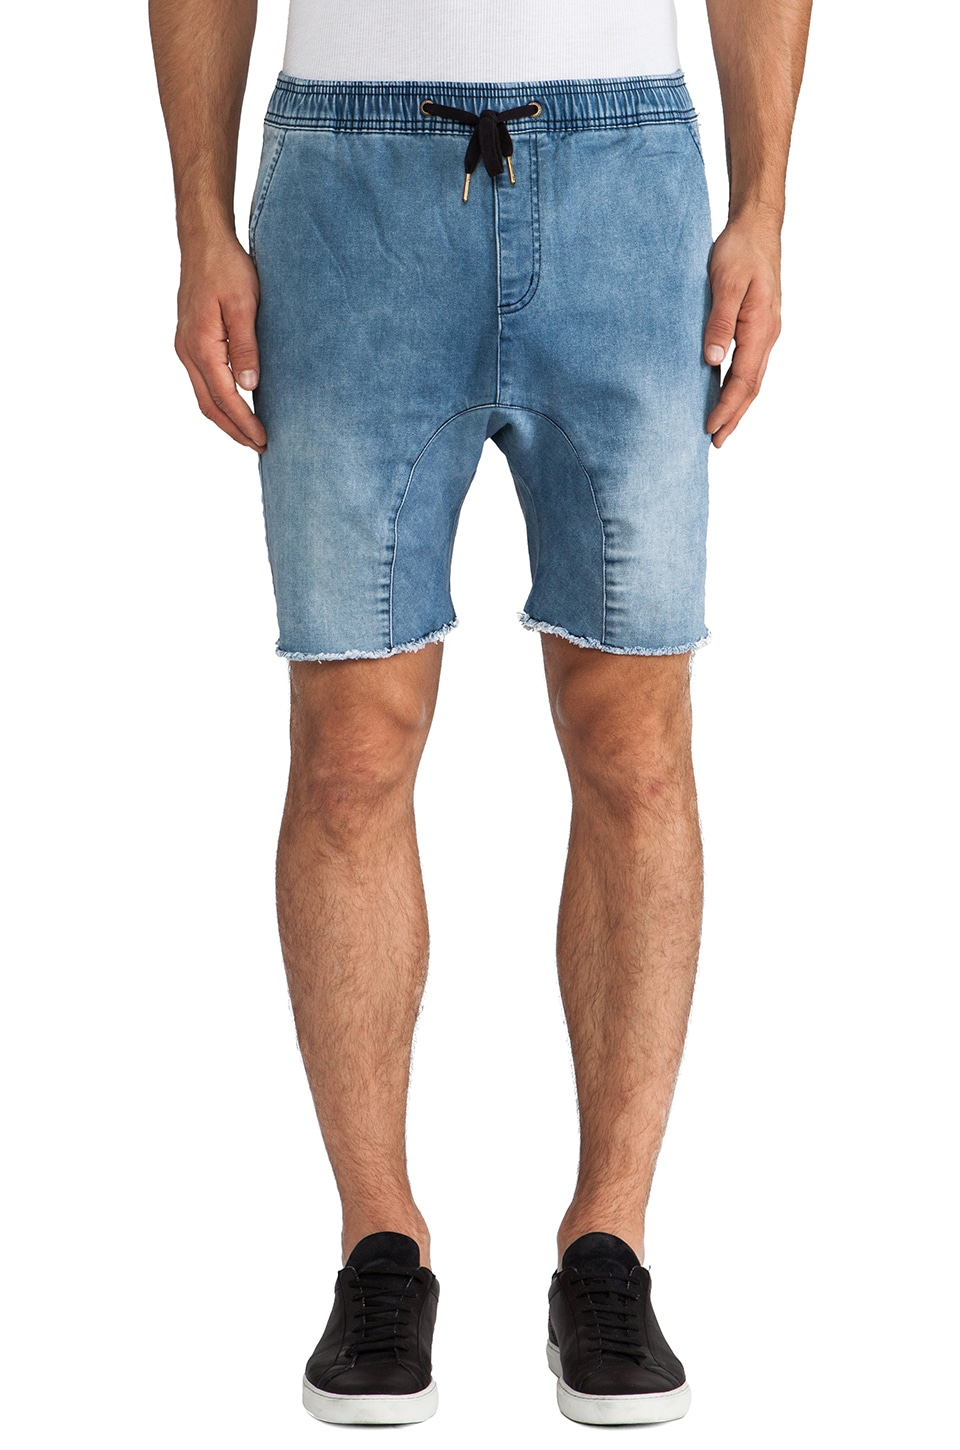 Zanerobe Sureshot Short in Dirty Indigo